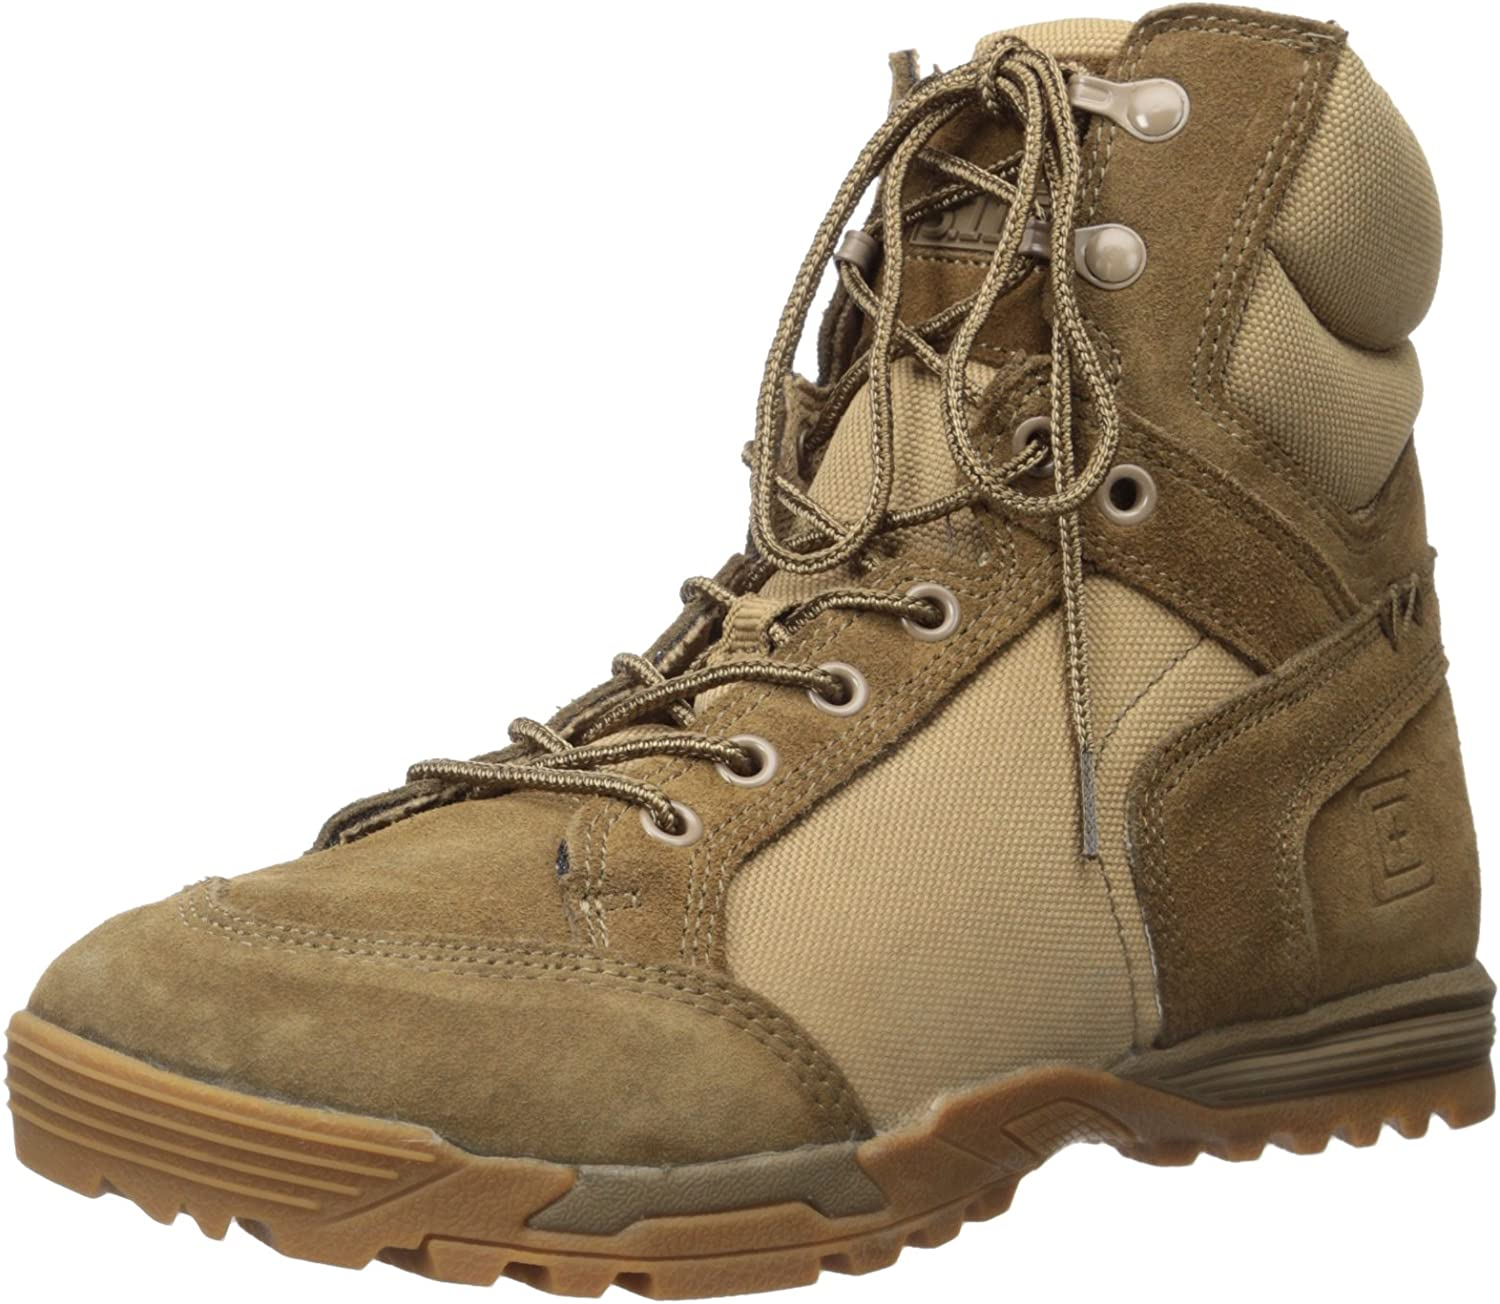 5.11 Tactical Men's Pursuit Advance DC lavoro sautope,Dark Coyote,7.5 D(M) US